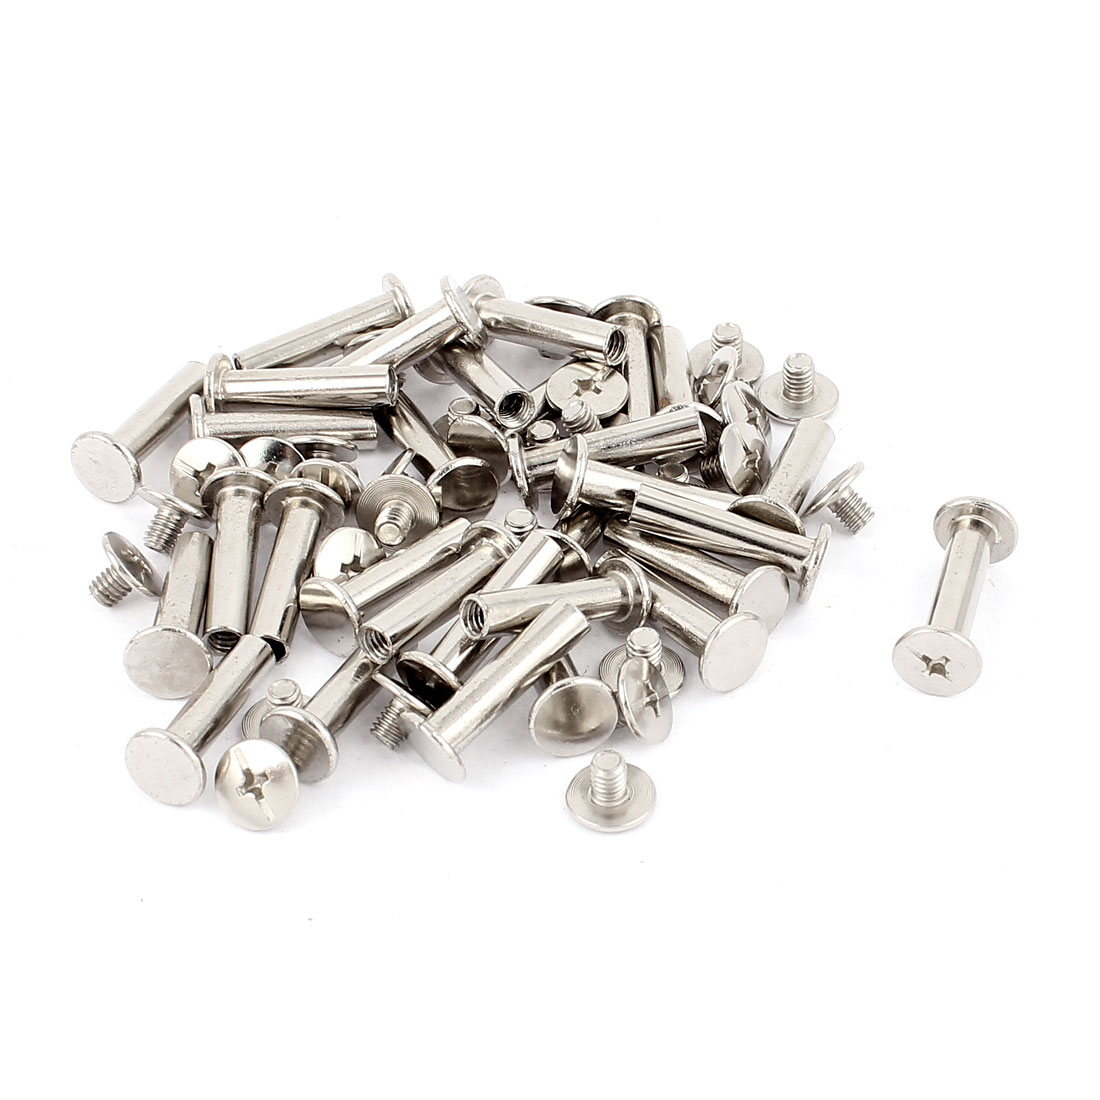 30Pcs M5x20mm Nickel Plated Binding Screw Post for Scrapbook Photo Albums